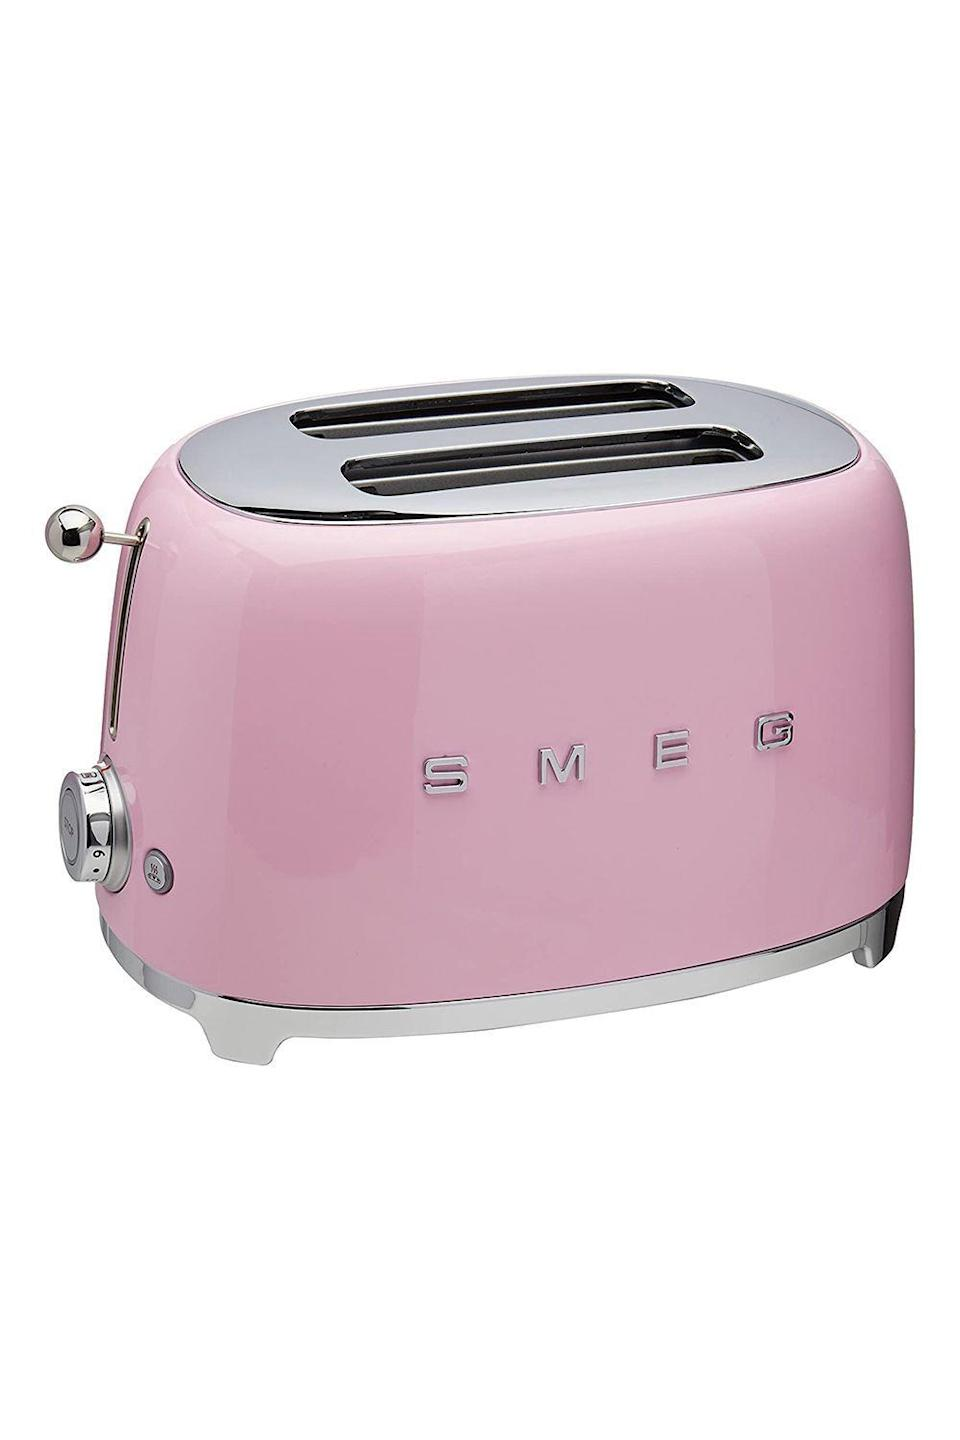 """<p><strong>Smeg</strong></p><p>www.westelm.com</p><p><strong>$169.95</strong></p><p><a href=""""https://go.redirectingat.com?id=74968X1596630&url=https%3A%2F%2Fwww.westelm.com%2Fproducts%2Fmrk-smeg-toaster-2-slice-e870%2F&sref=https%3A%2F%2Fwww.oprahdaily.com%2Flife%2Fg31400004%2Funique-mothers-day-gifts%2F"""" rel=""""nofollow noopener"""" target=""""_blank"""" data-ylk=""""slk:Shop Now"""" class=""""link rapid-noclick-resp"""">Shop Now</a></p><p>Here's a gift any home cook will consider toast-worthy: Not only will the retro-style charm of this sturdy toaster inspire her to embrace her inner June Cleaver, but it'll also ensure she always has perfectly crispy, gold brown bread and bagels, thanks to its variety of settings and extra-wide slots. </p>"""